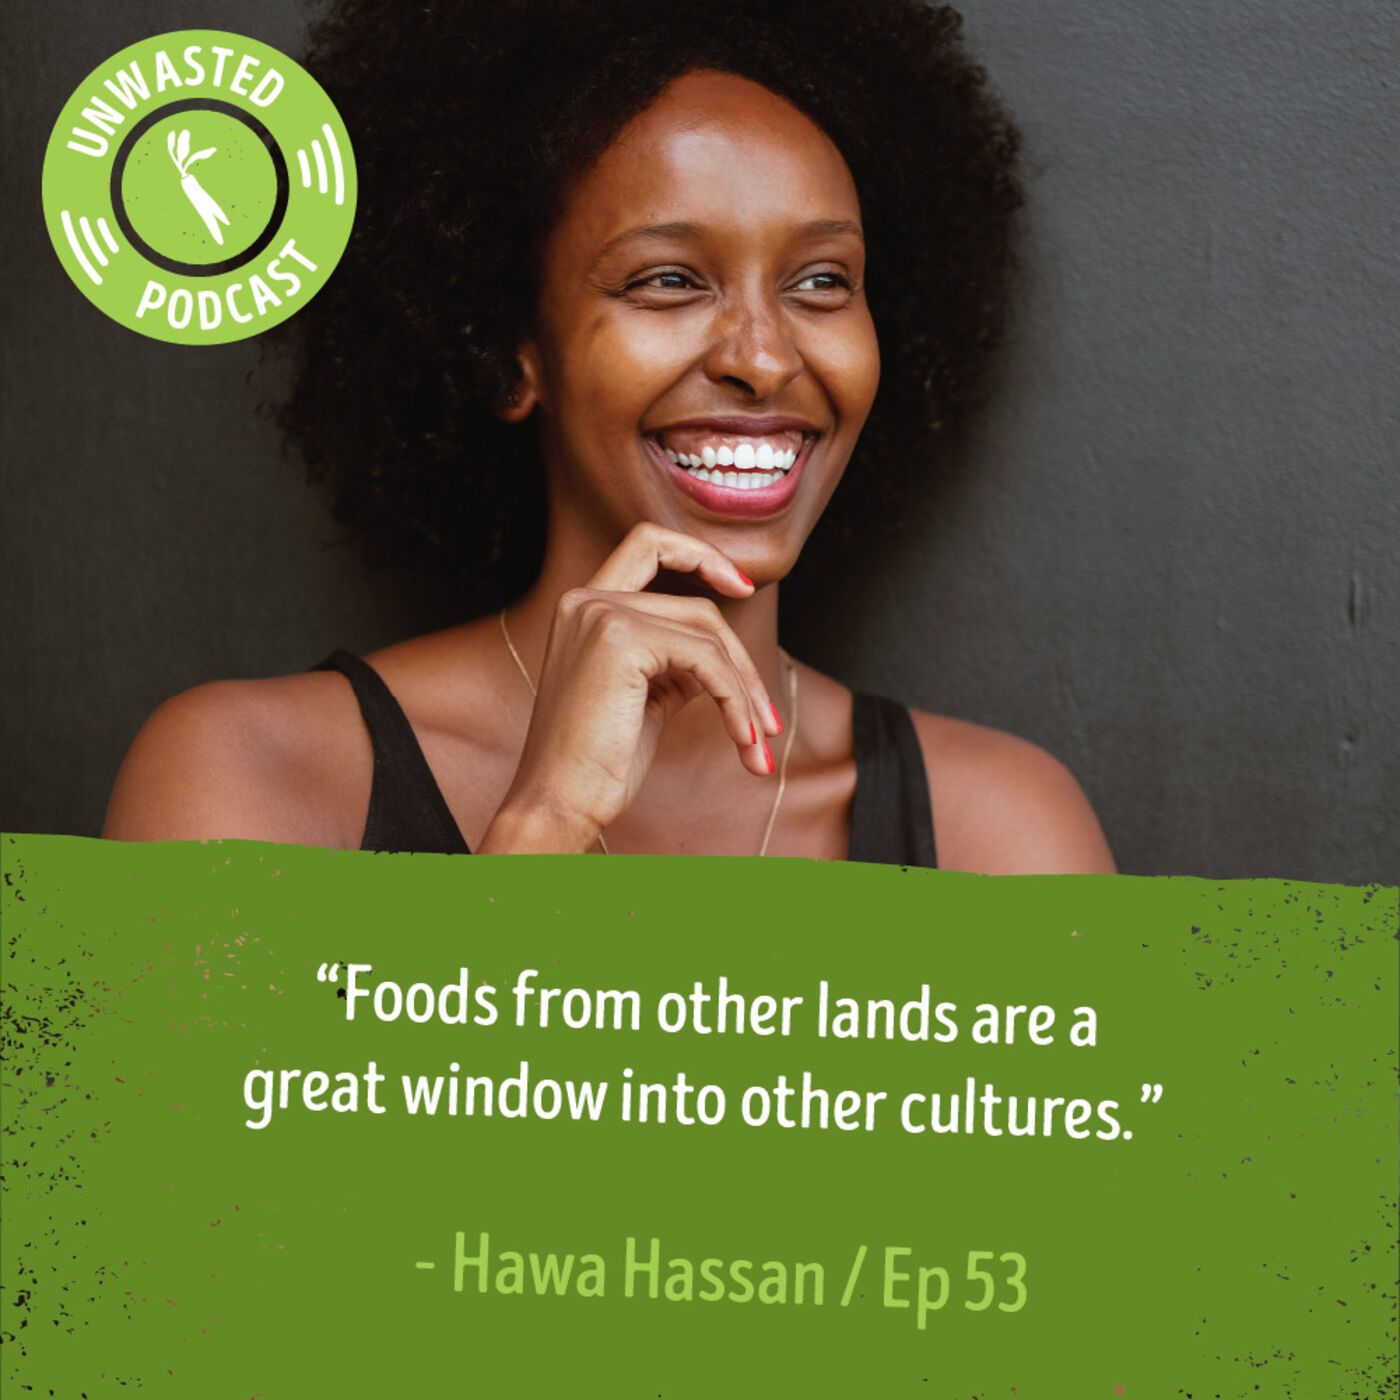 Understanding Our Grandmothers' Recipes With Hawa Hassan